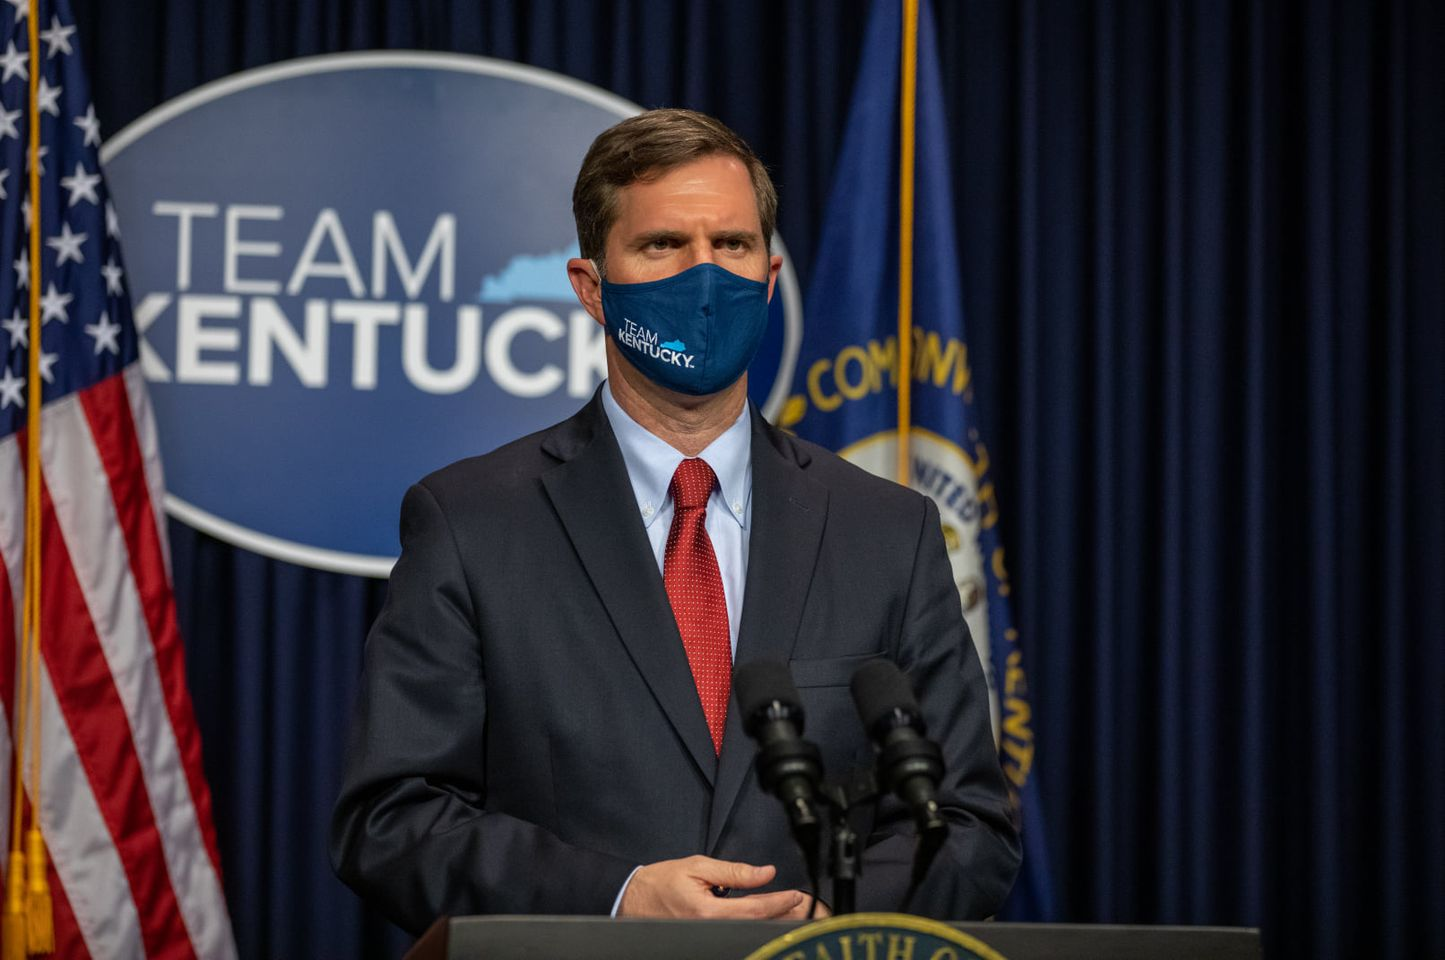 Kentucky Supreme Court backs laws limiting governor's emergency powers